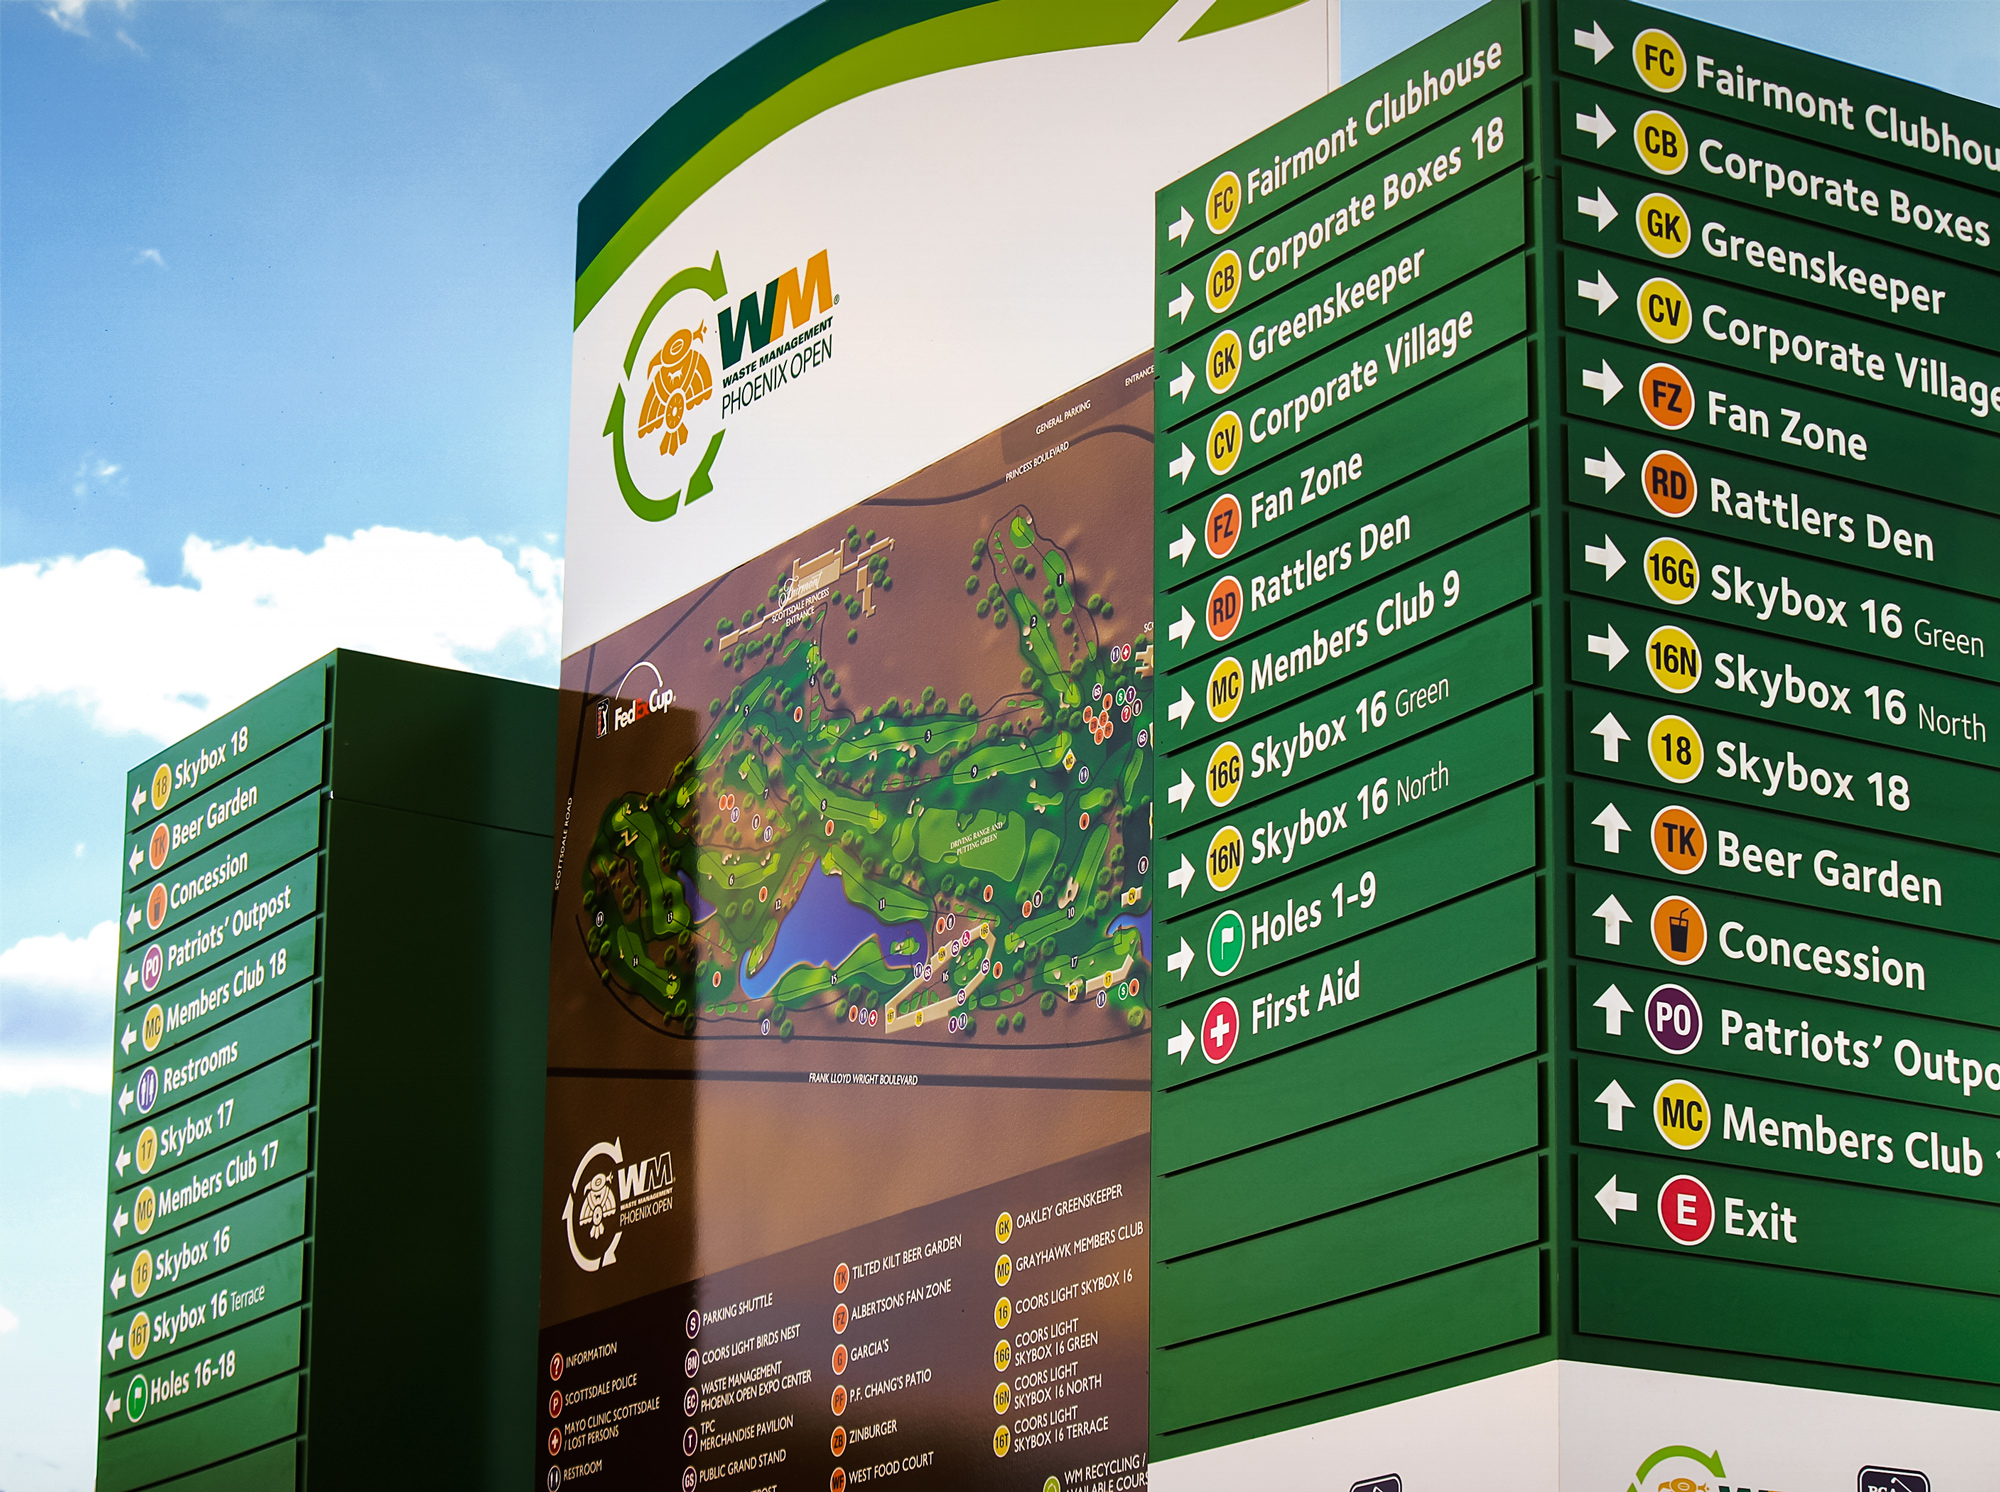 The Tournament's largest freestanding map and directional. This element provides the main wayfinding for the course and venues.